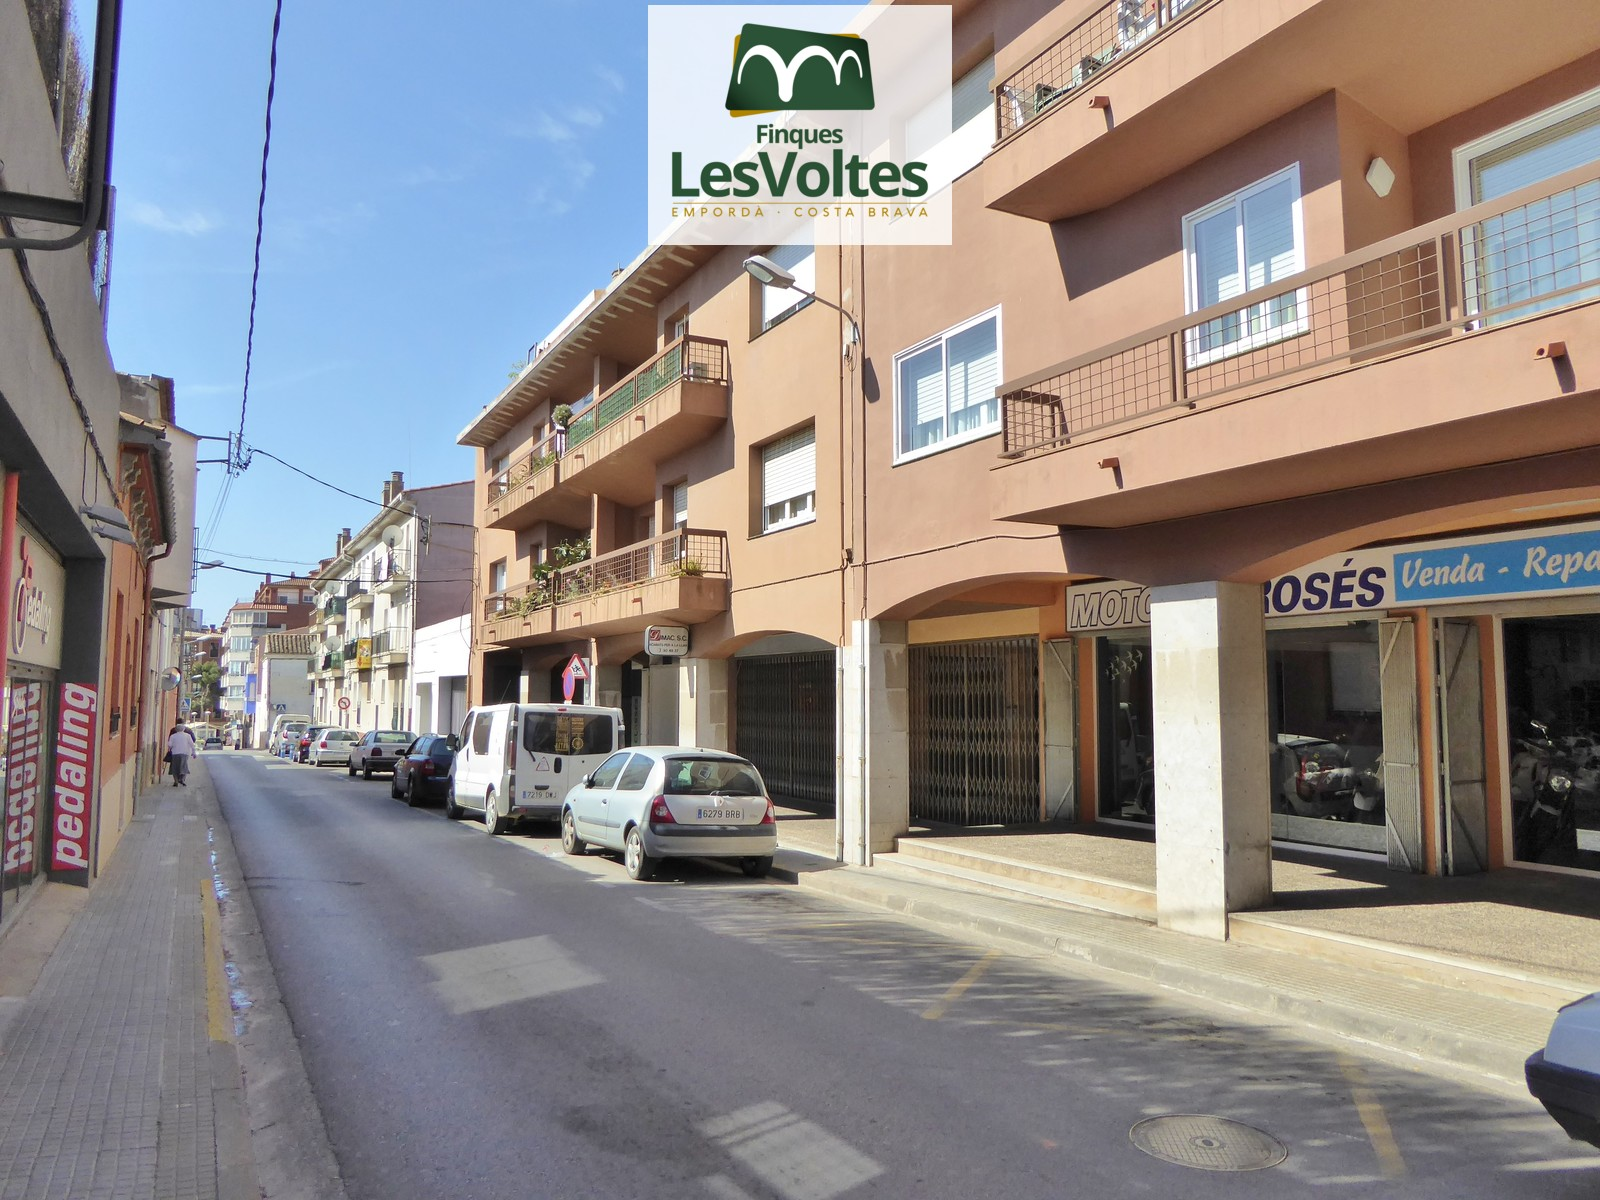 Parking for sale in the center of Palafrugell.